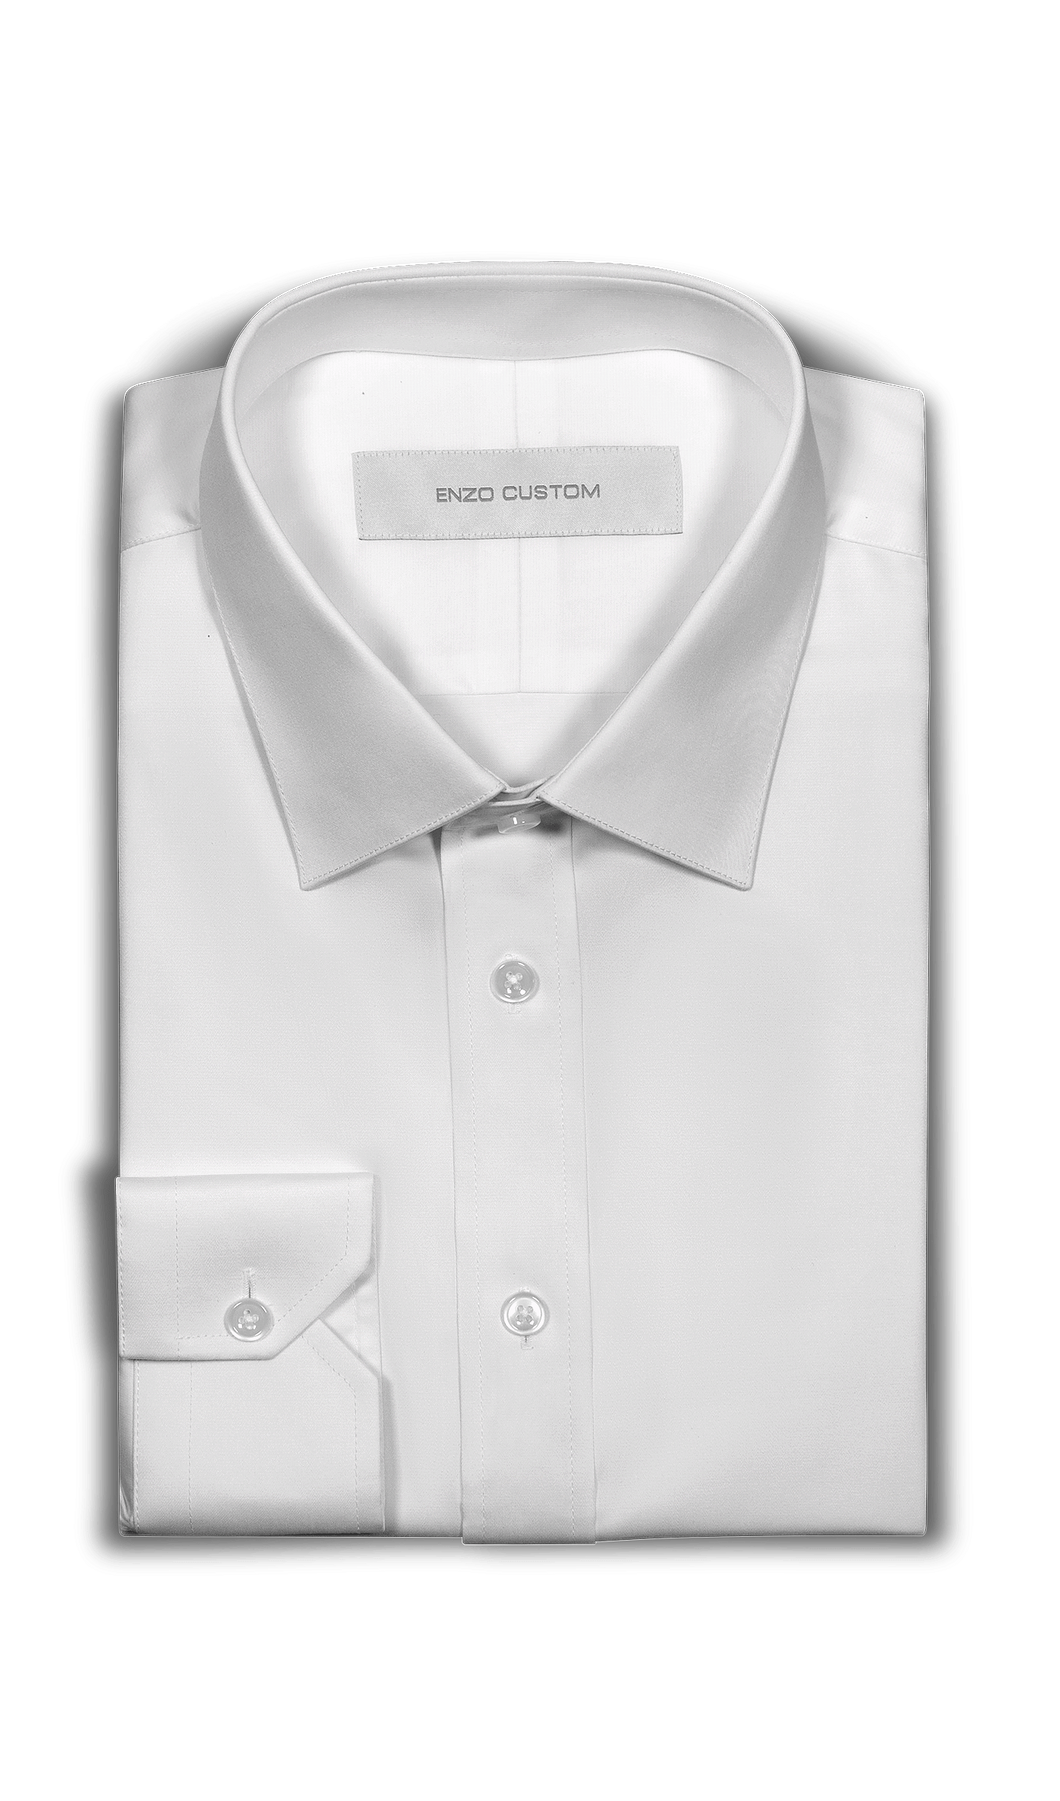 Loro Piana Shirt Tessuti Per Camiceria White Dress Shirt